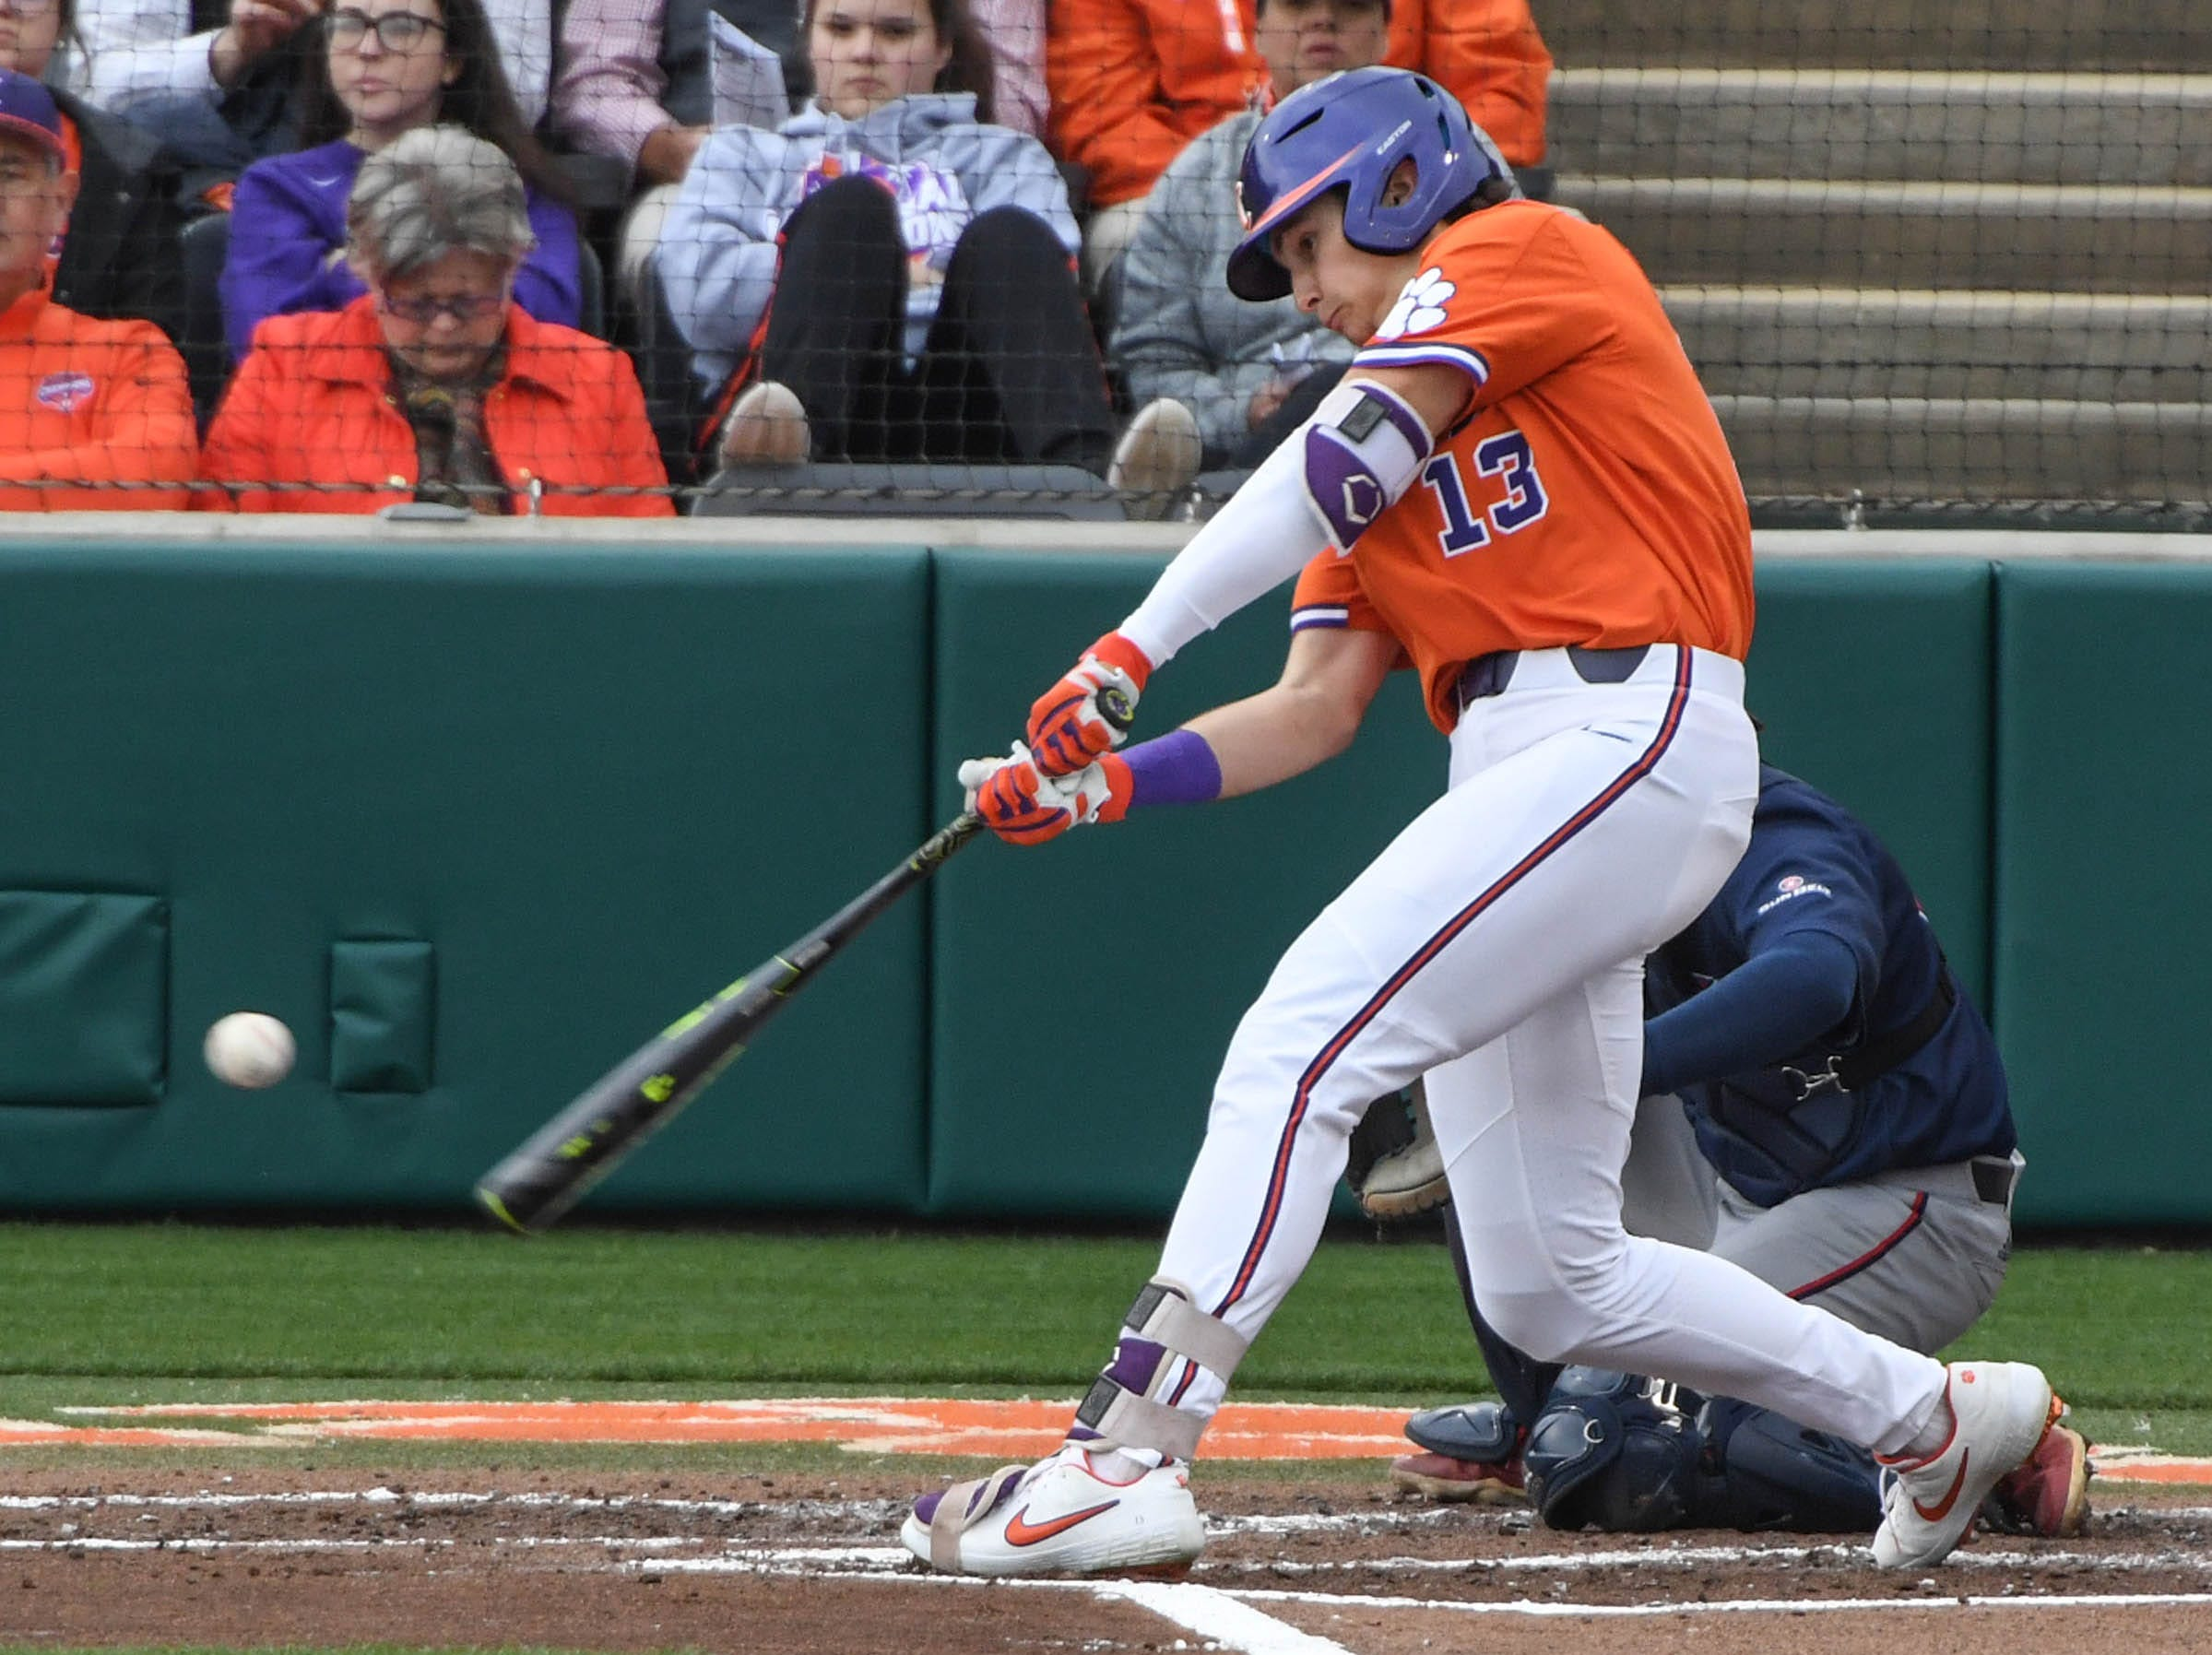 Clemson sophomore Bryce Teodosio(13) swings against South Alabama during the bottom of the third inning at Doug Kingsmore Stadium in Clemson Friday, February 15, 2019.